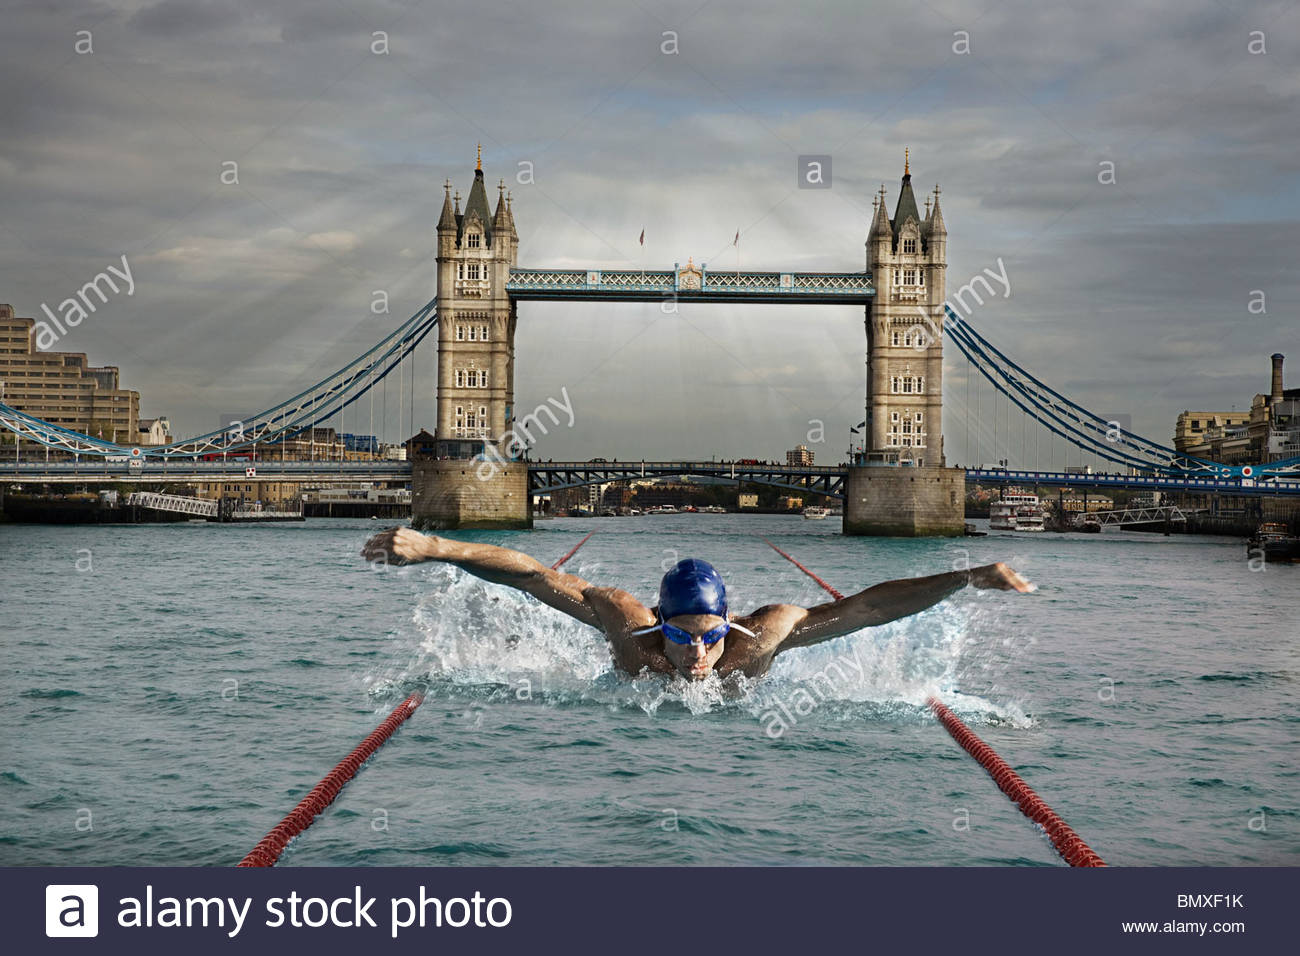 Swimmer in the river thames - Stock Image